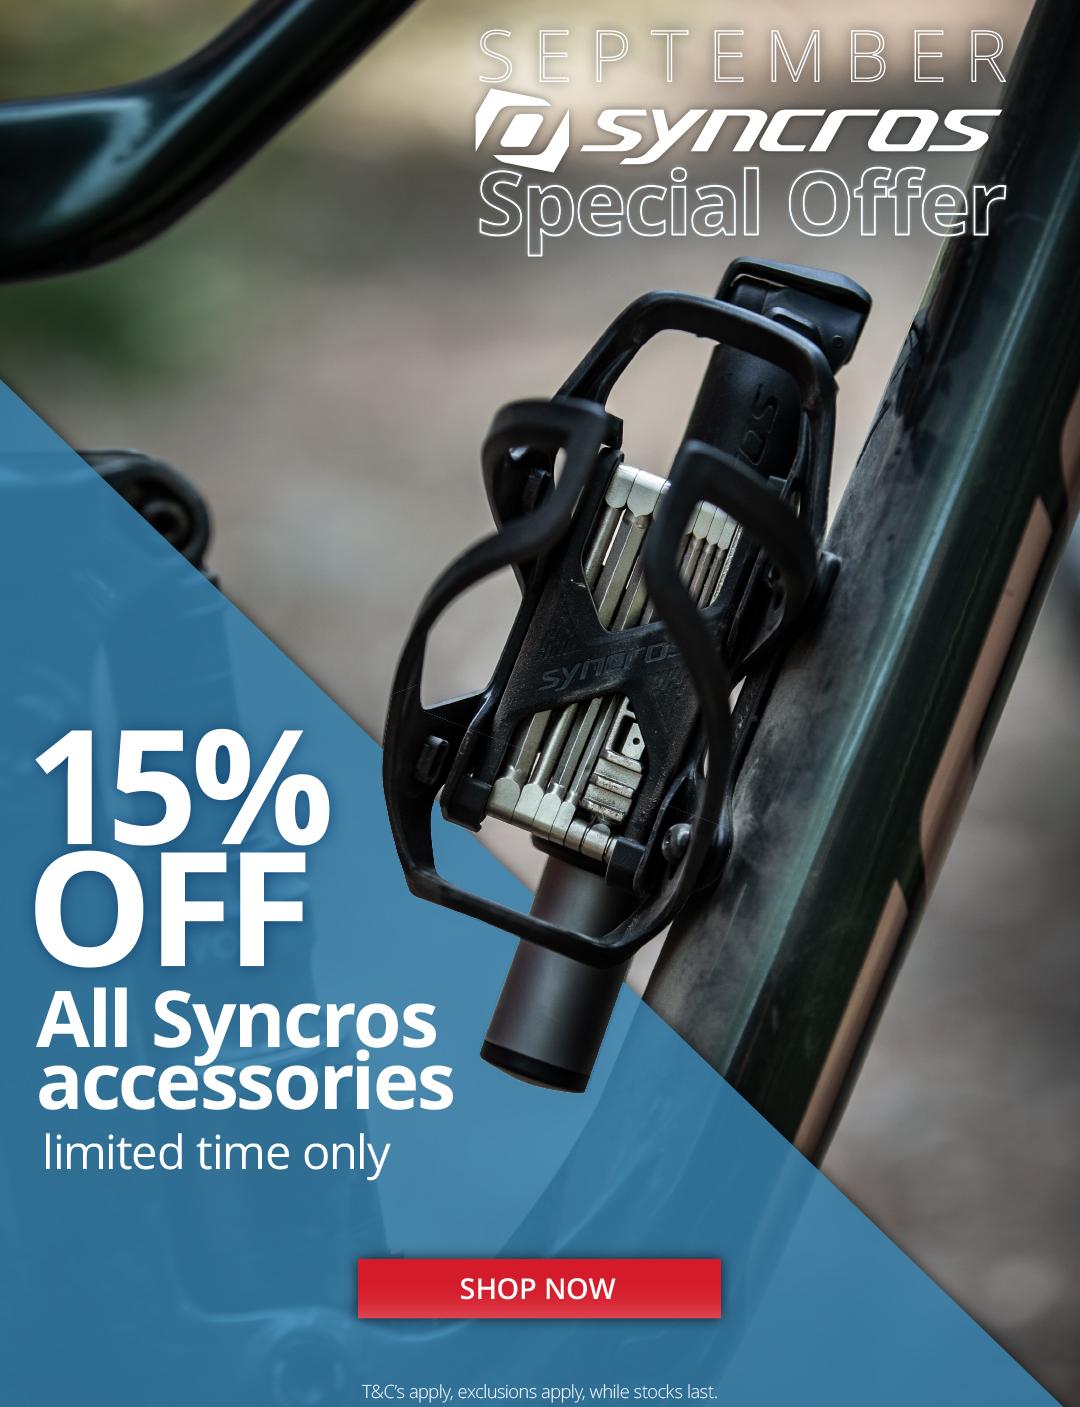 Syncros bike acccessories special offer - Eurocycles.com